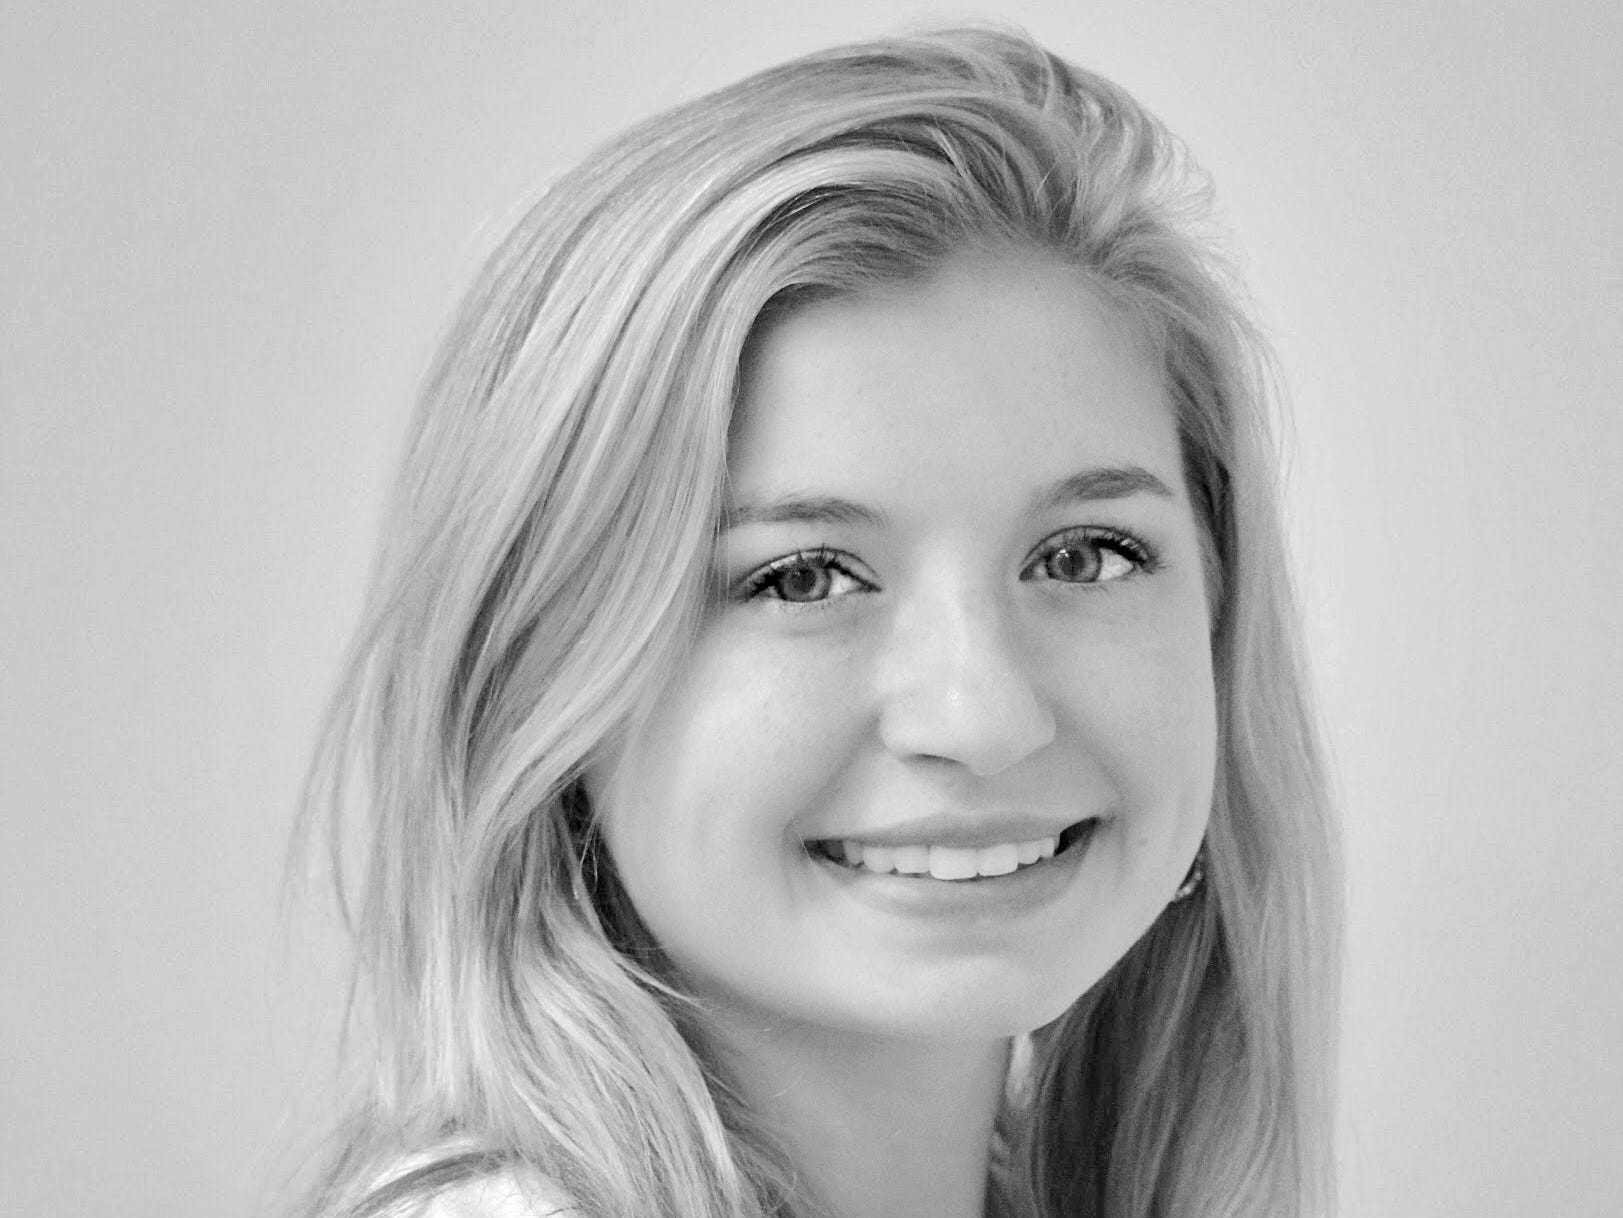 South Western's Grace Dickmyer is one of 12 contestants competing to be crowned Miss Hanover Area 2018. The pageant will be held at 7 p.m., Oct. 22 at New Oxford High School.